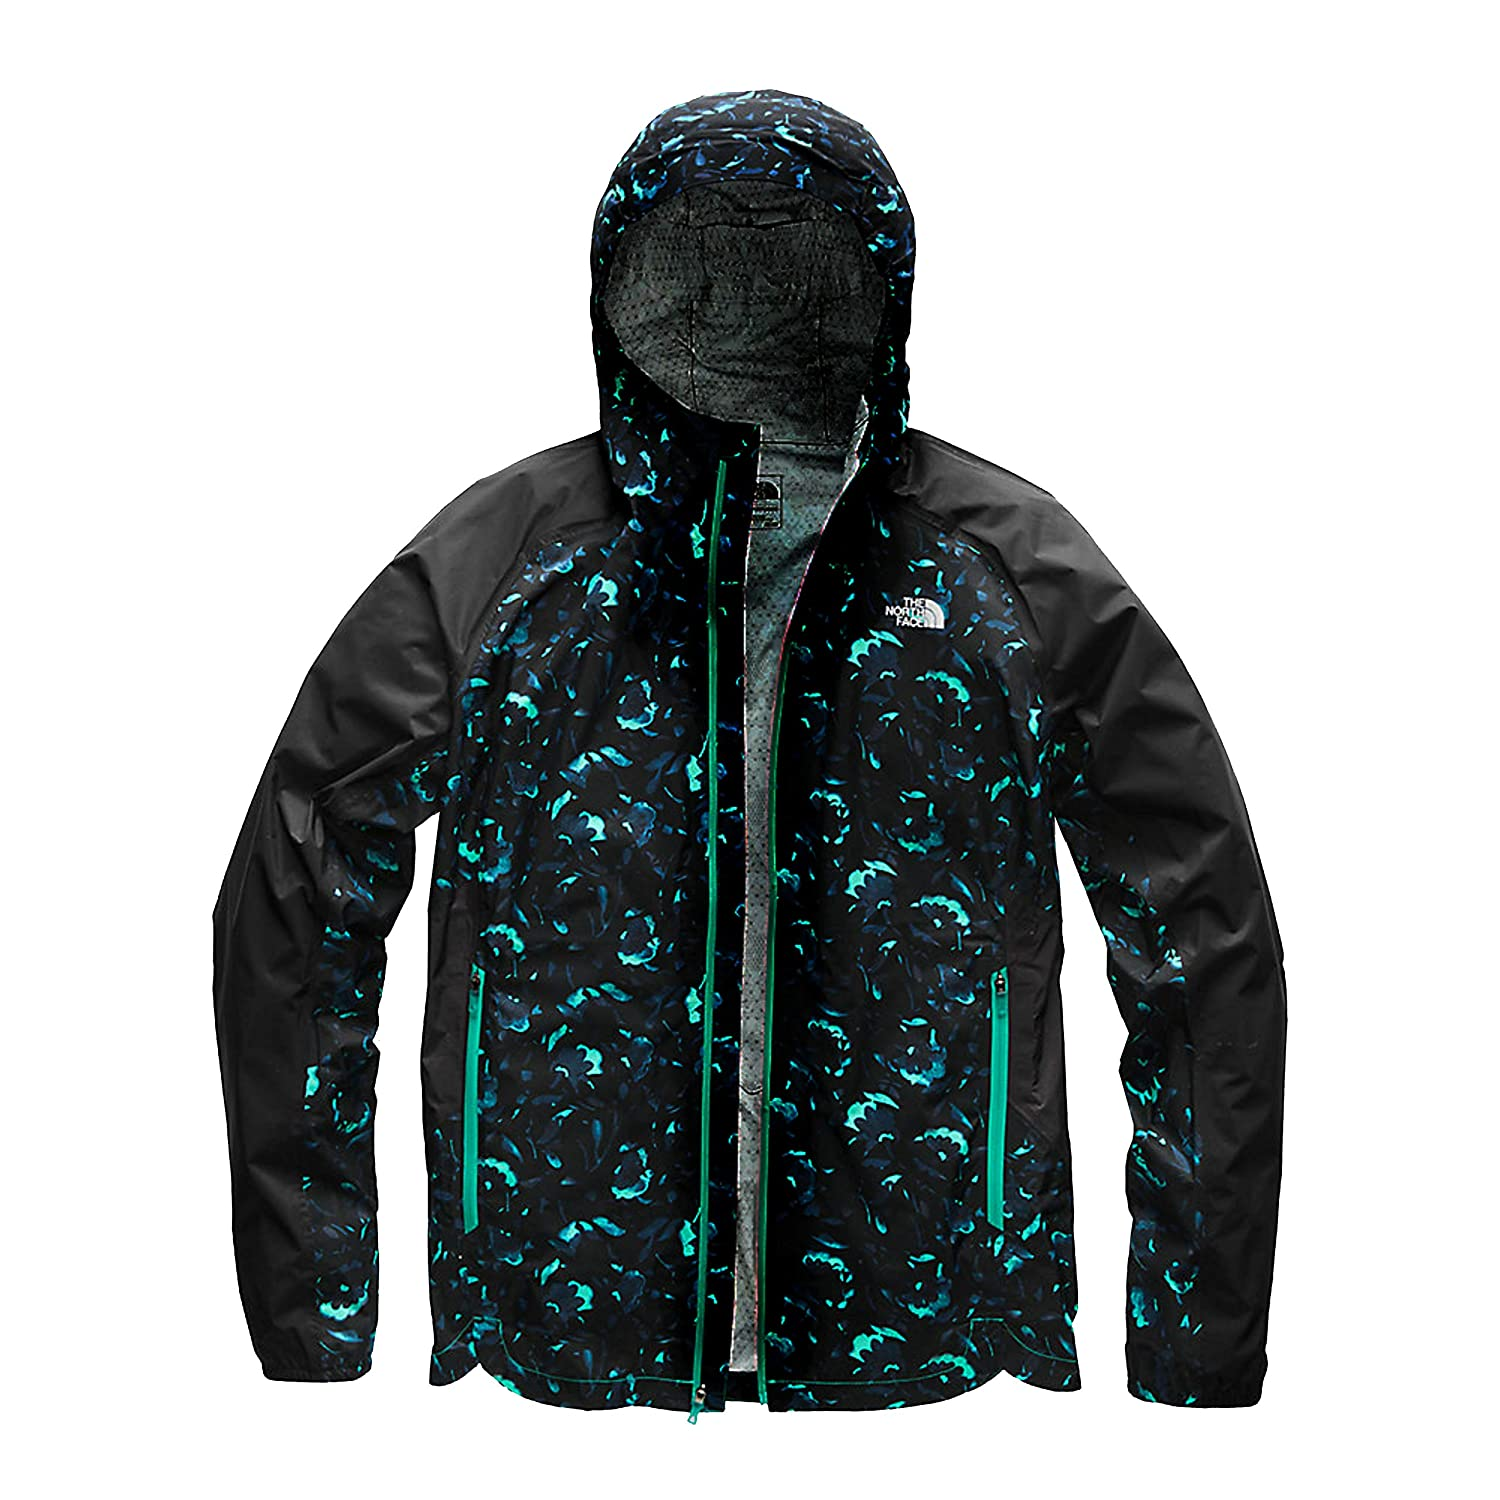 111179f0b Amazon.com: The North Face Women's Stormy Trail Windbreaker Water ...